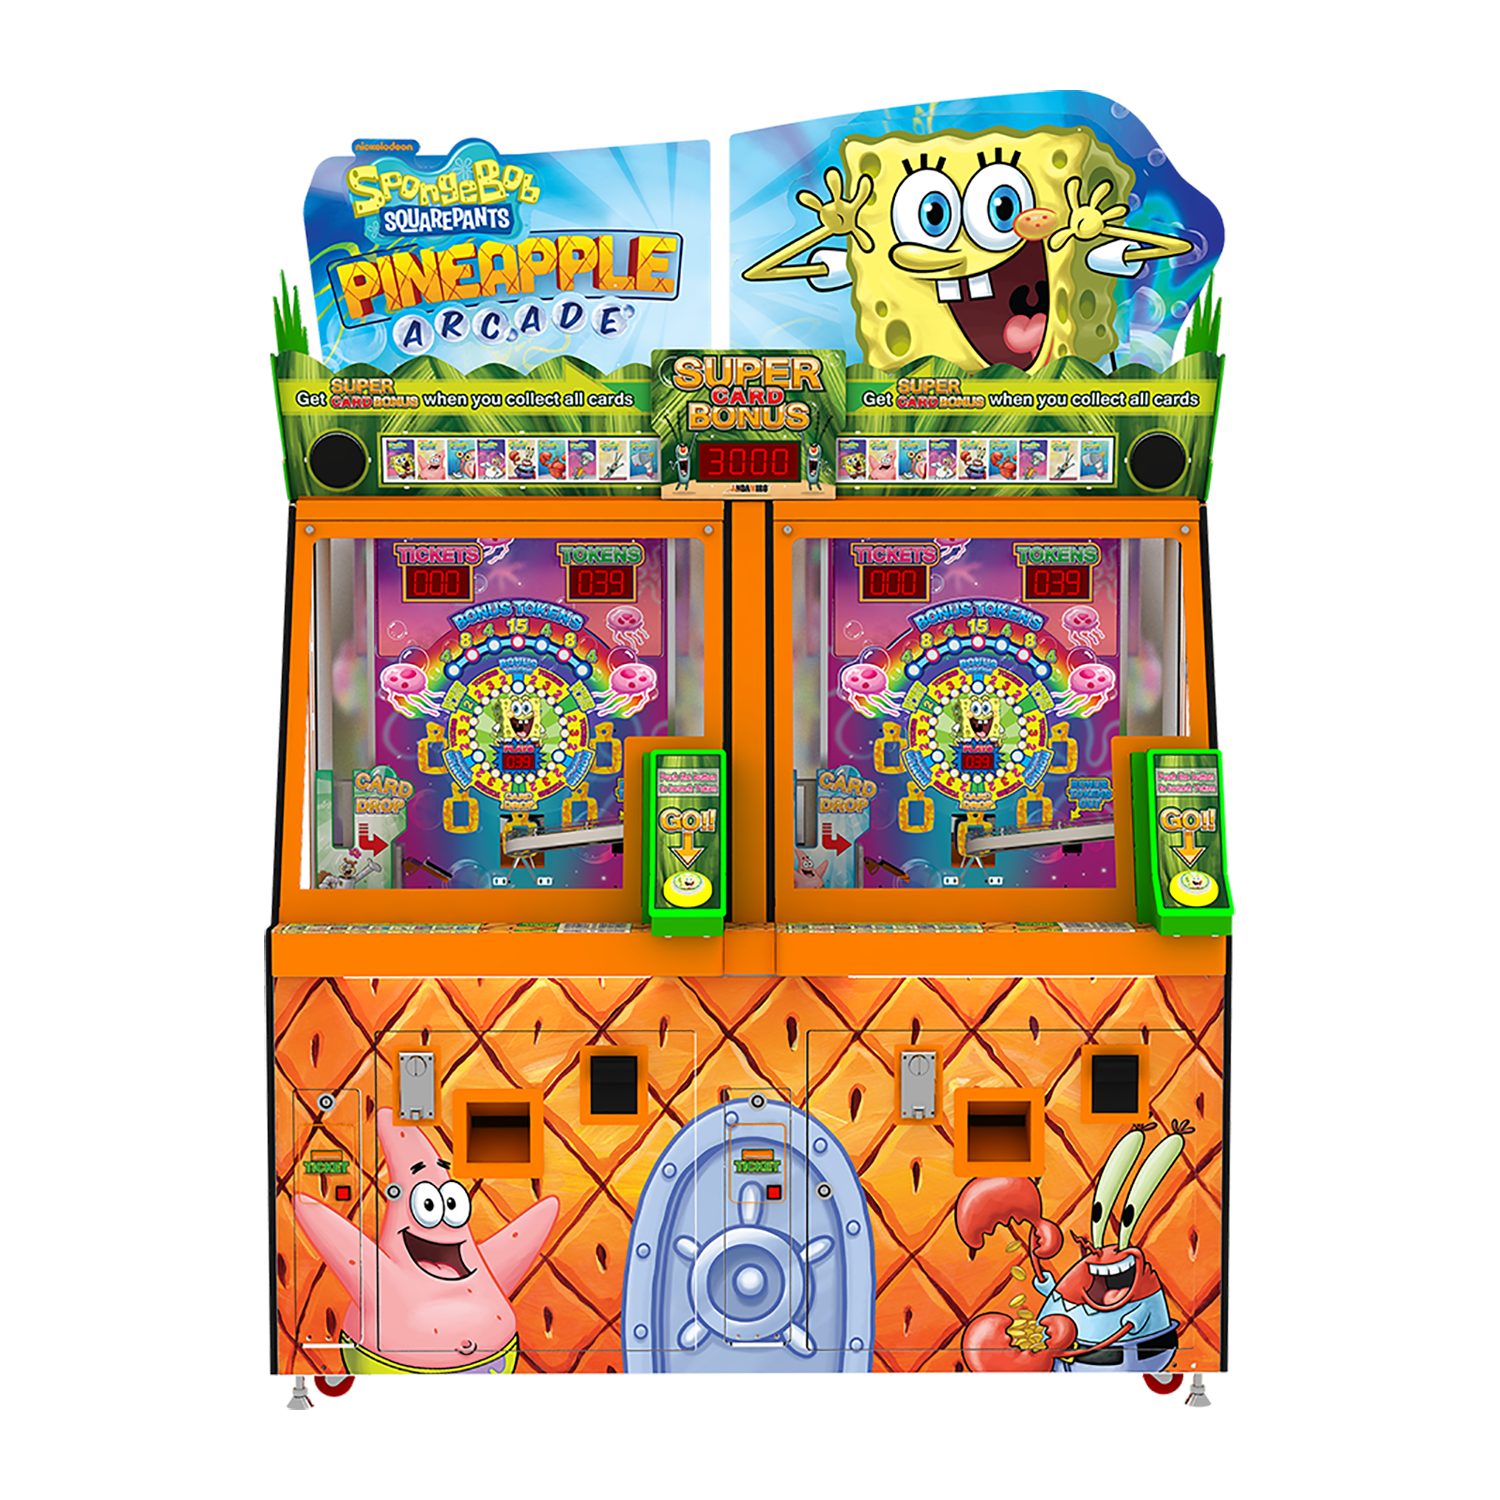 SpongeBob Pineapple Arcade